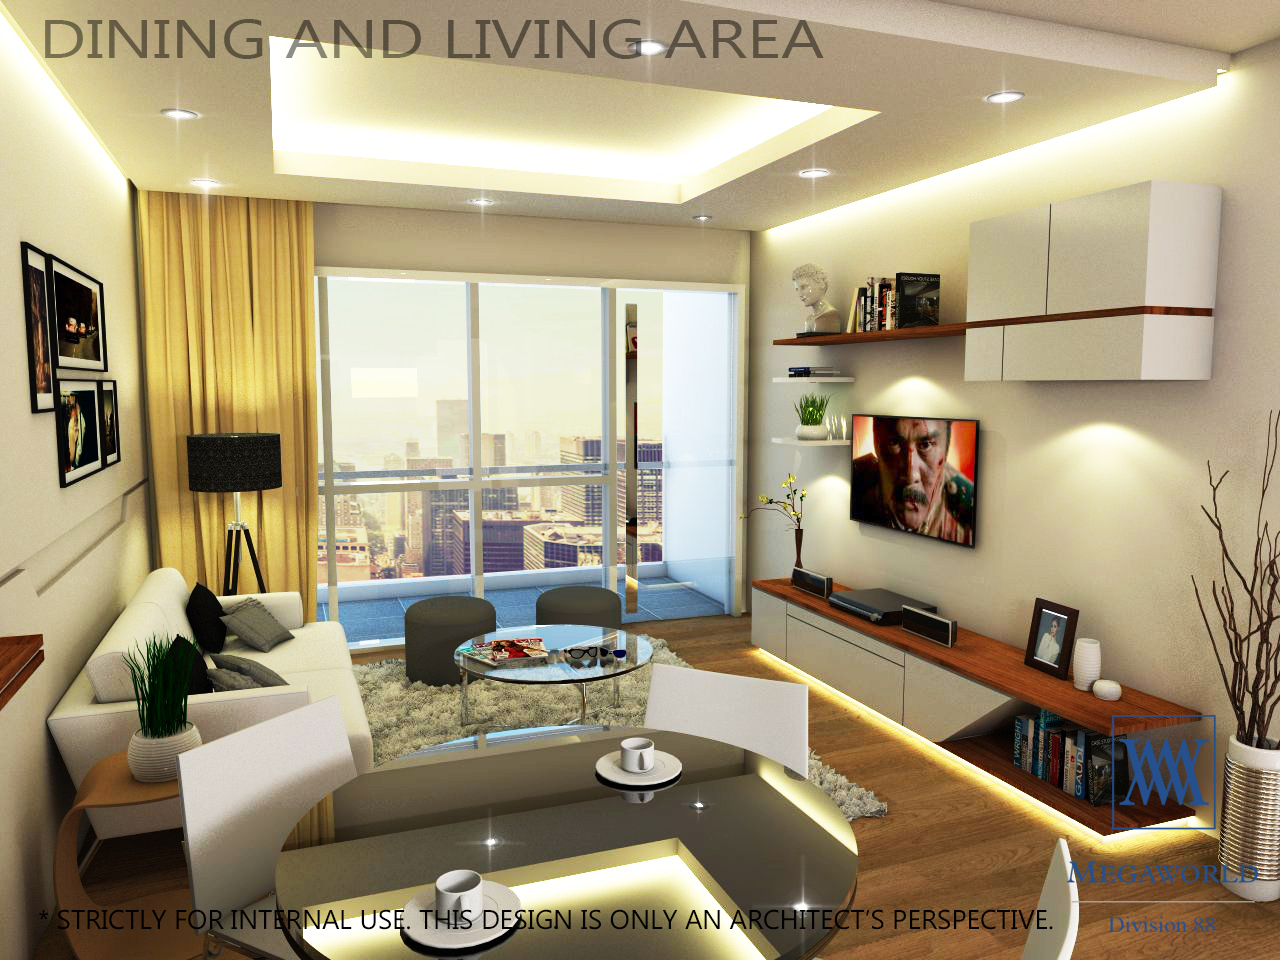 ... DINING AND LIVING AREA Condos For Sale Bgc Fort ...